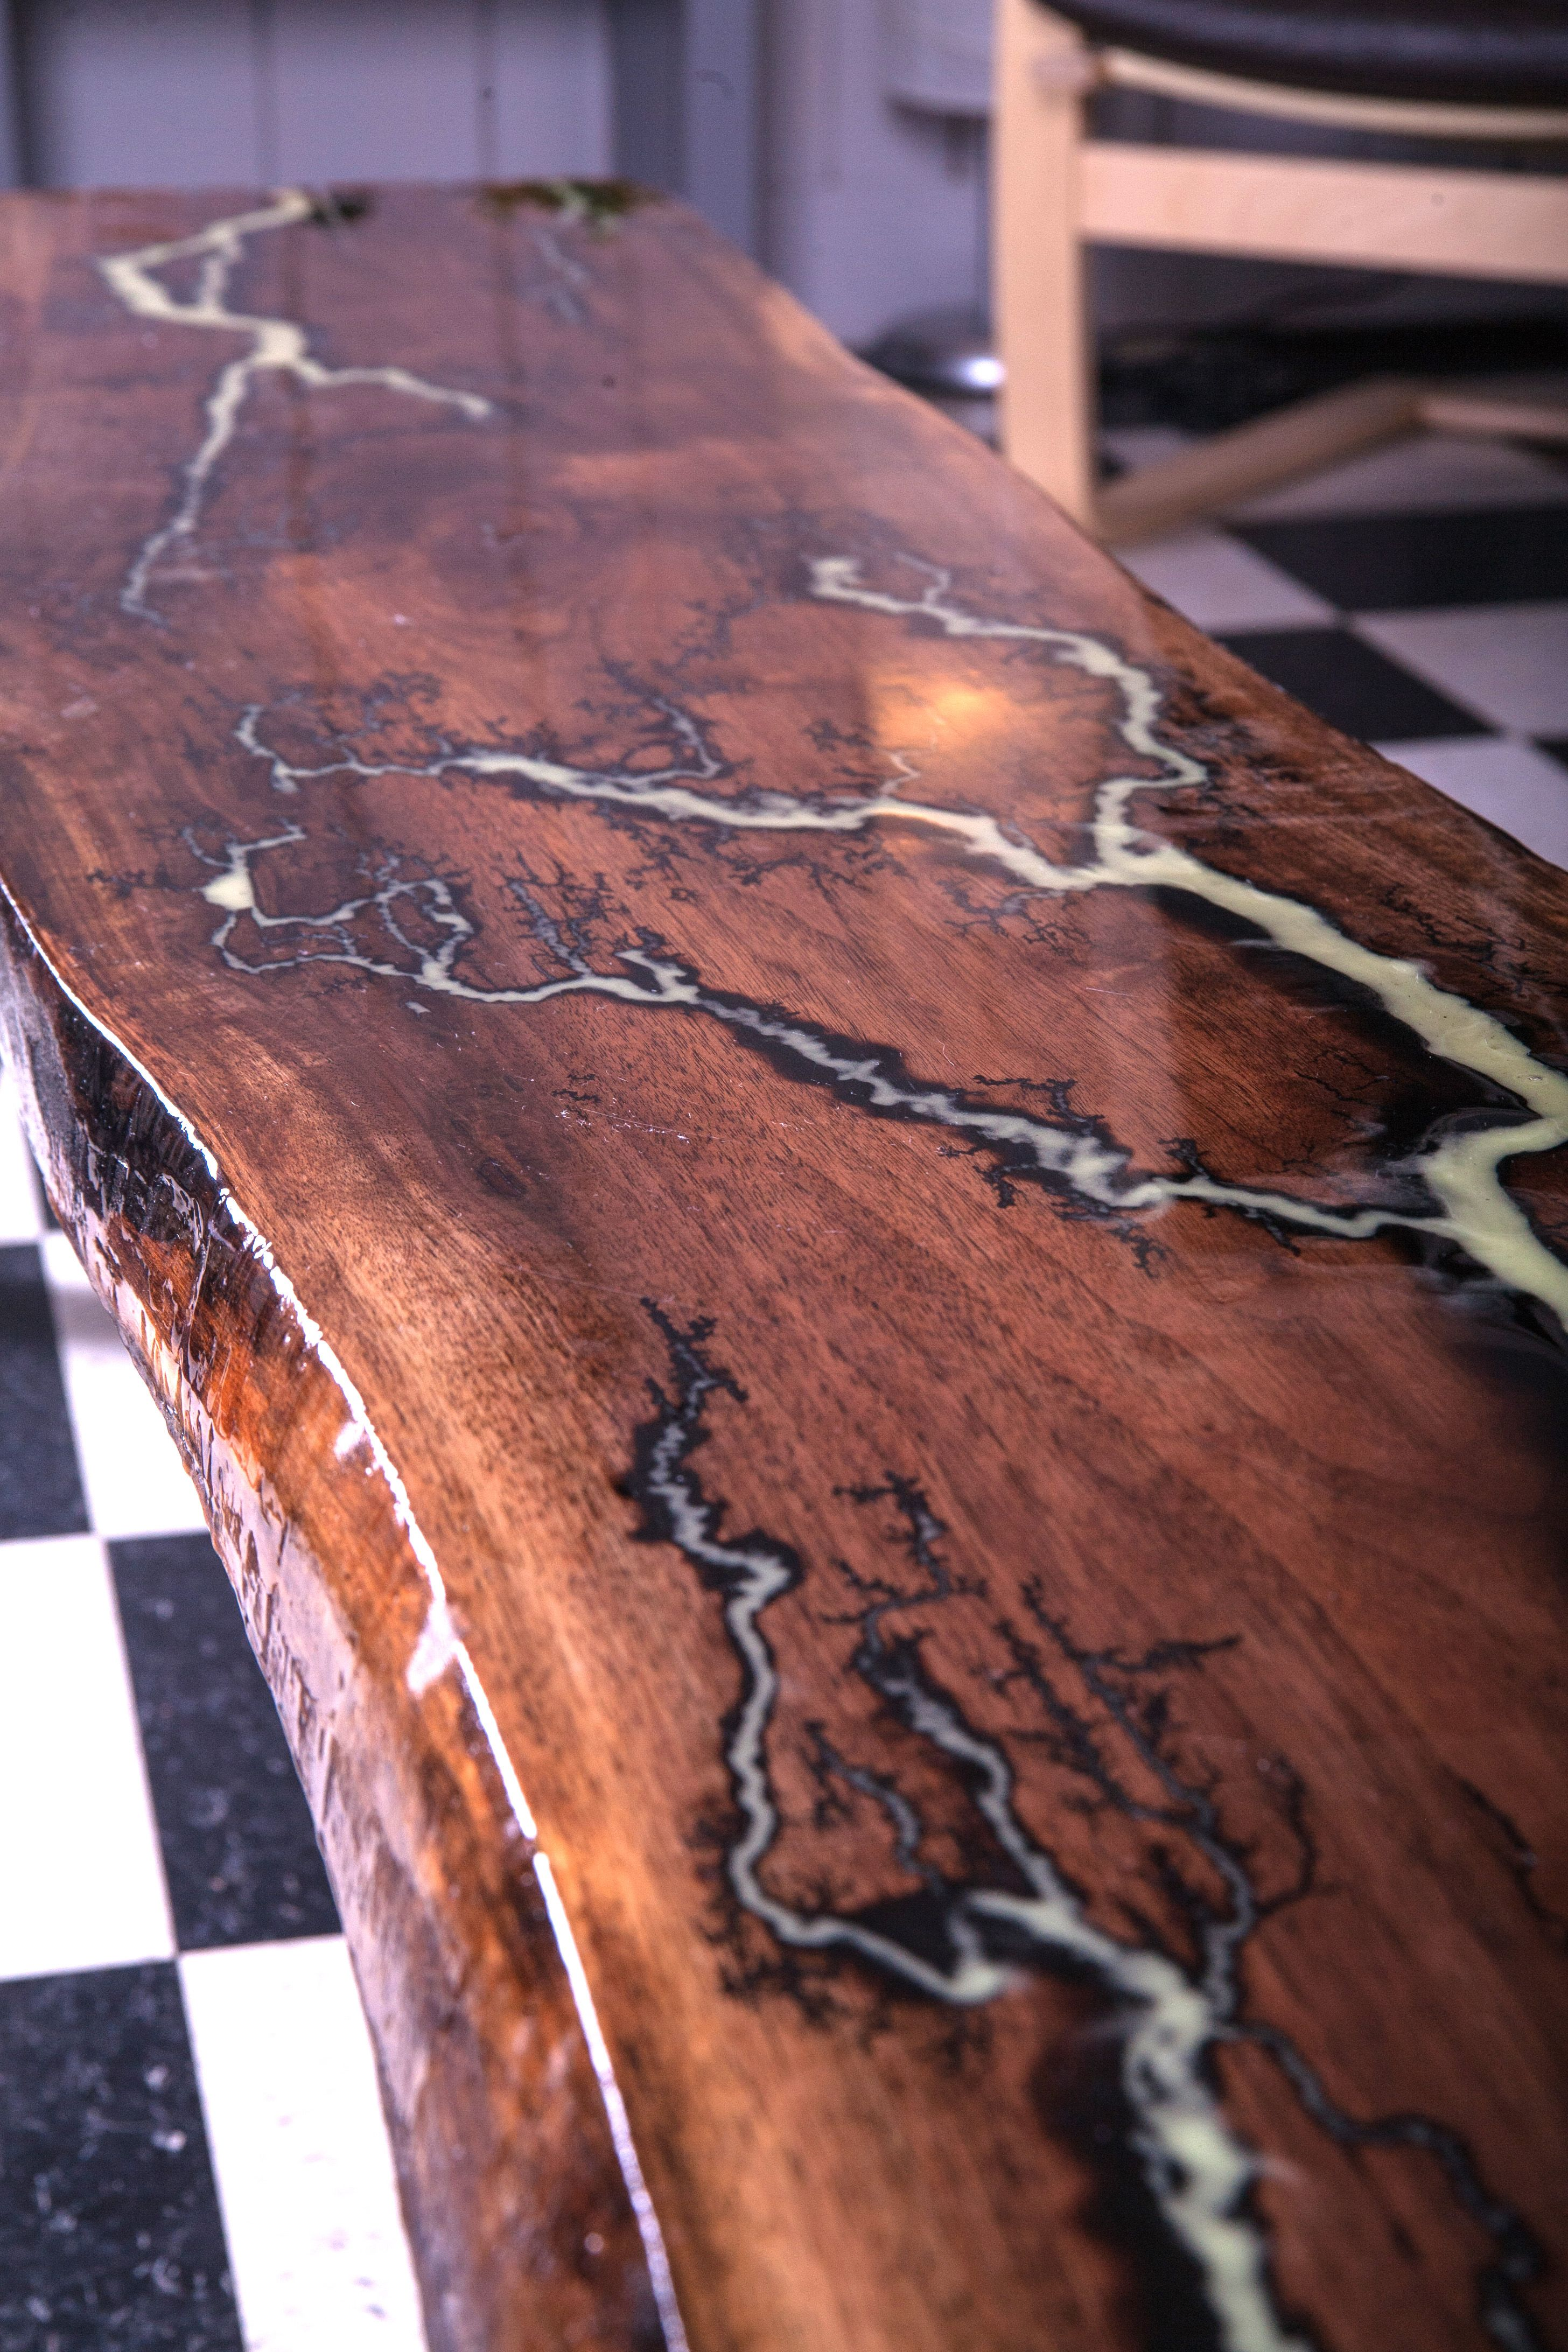 Live Edge Walnut Table With Glowing Lichtenberg Figure And Epoxy Finish.  Http://